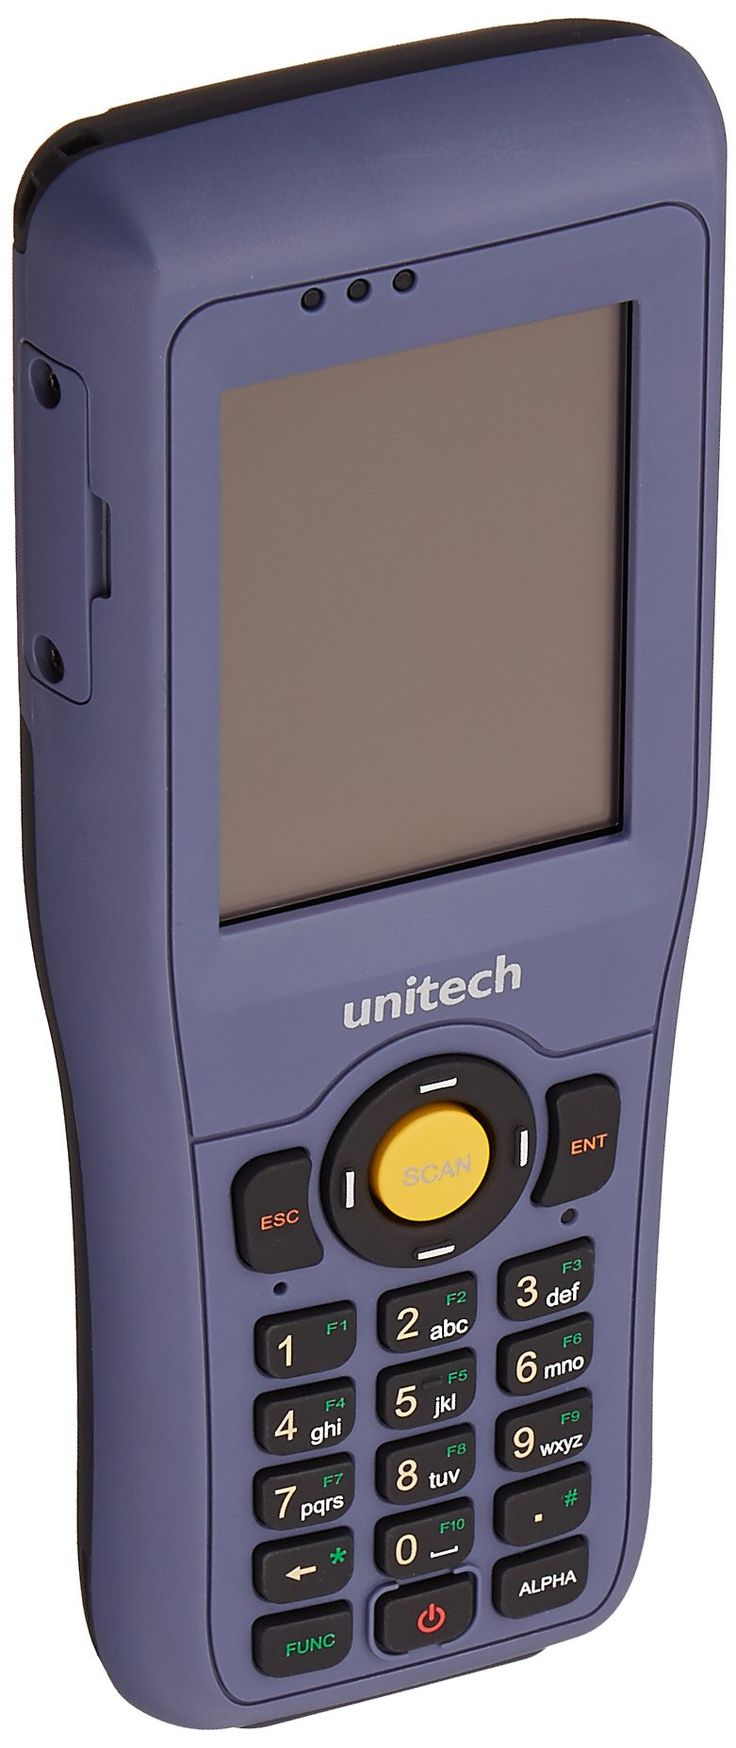 Unitech HT682-9460UADG HT682 Mobile Computer, Laser, Wi-Fi, Bluetooth, CE 6.0, Battery, USB Cable, Power Adapter. Microsoft Windows CE 6.0 Pro. CPU: 800MHz TI OMAP AM3703. Environmental Seal: IP65. Withstands 6 foot drops. Weight: 11 oz (with battery).